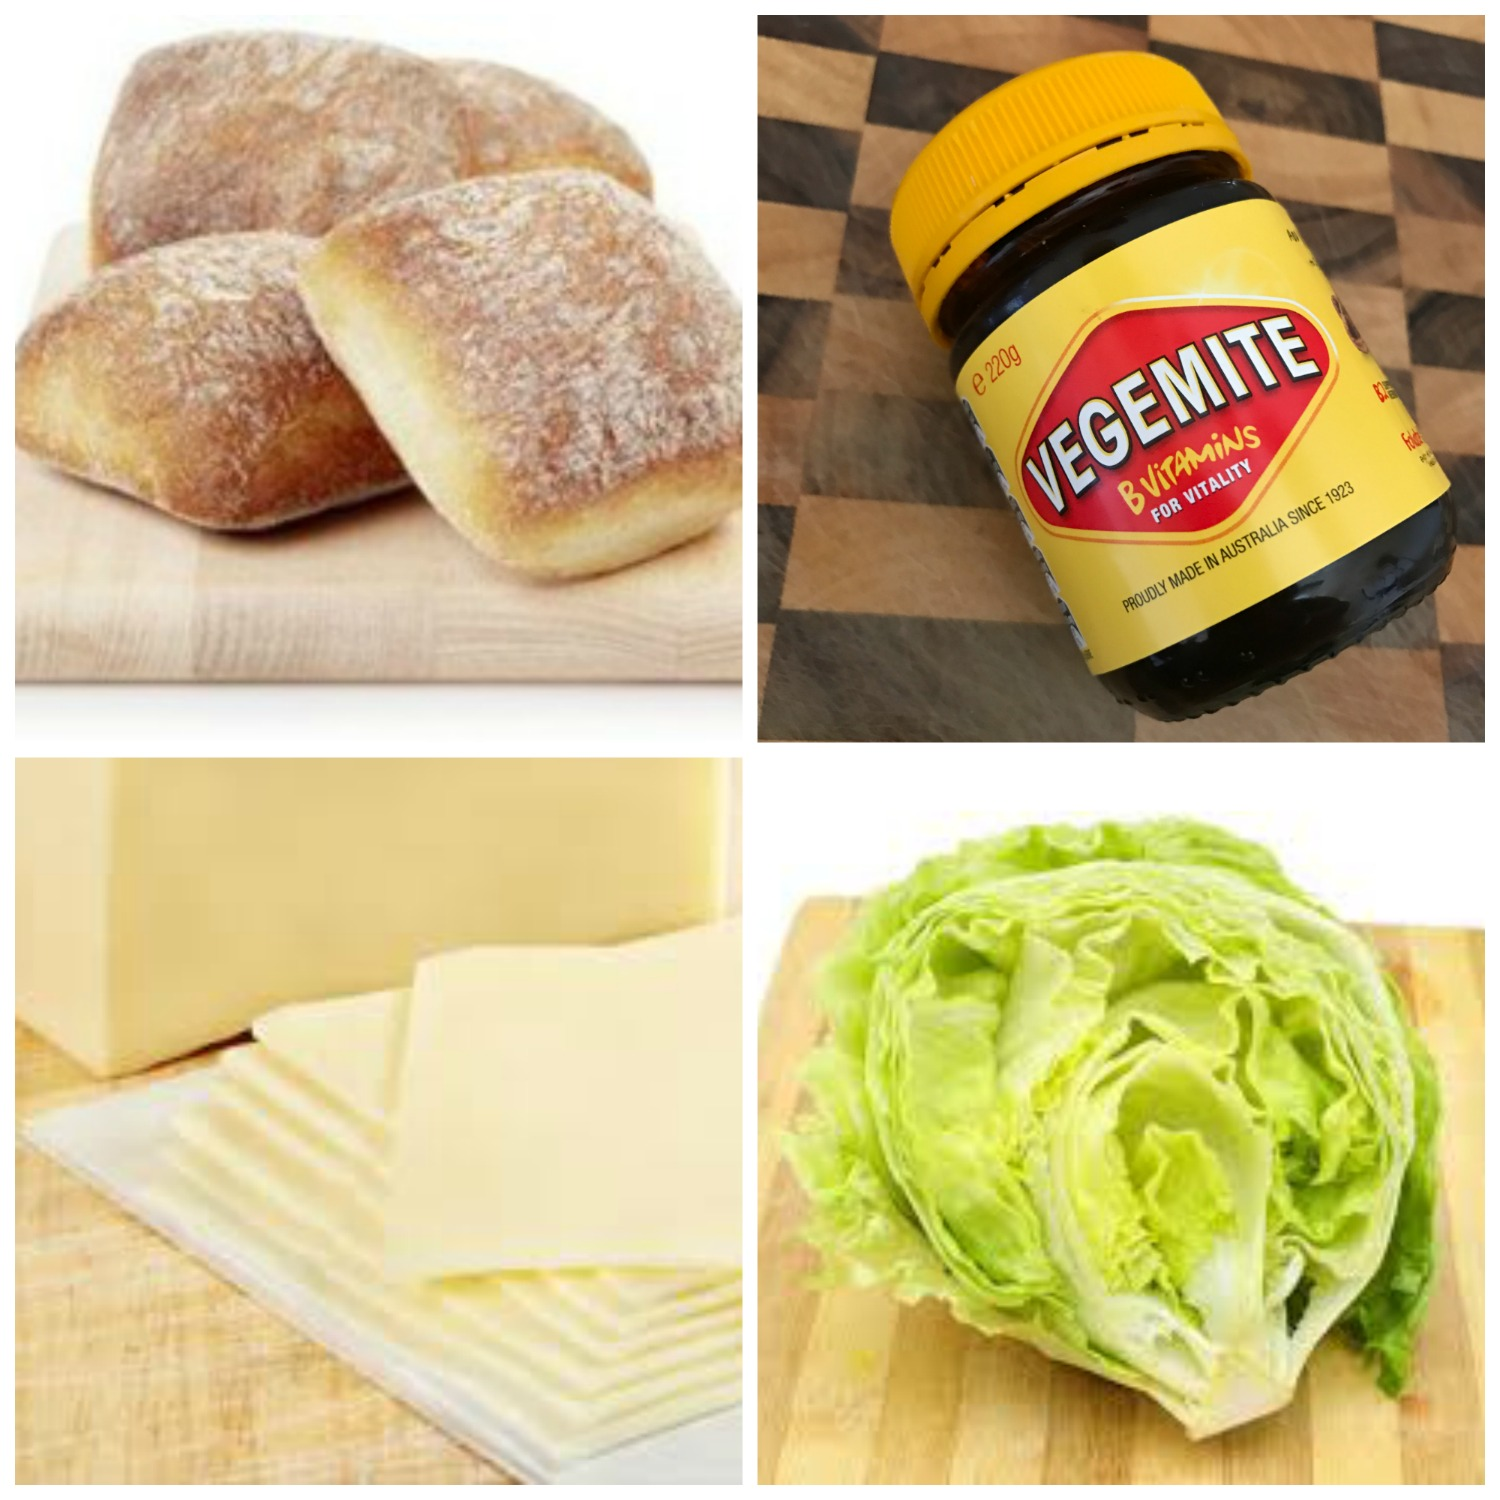 Cheese, Vegemite & Lettuce